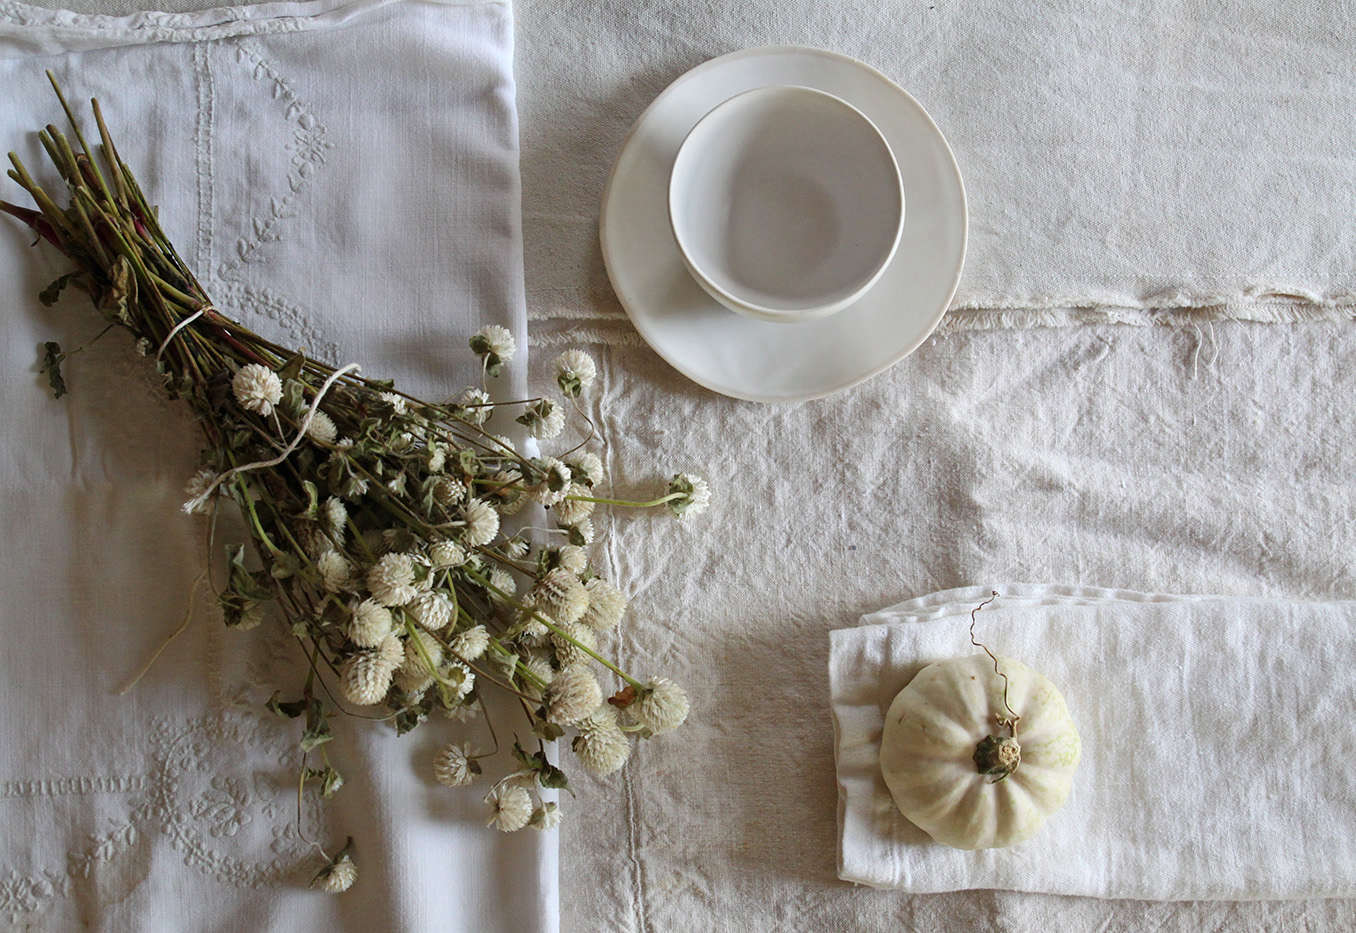 Halloween%20table%20with%20Black%20Leaves%2C%20white%20elements%2C%20by%20Justine%20Hand%20for%20Remodelista.jpg